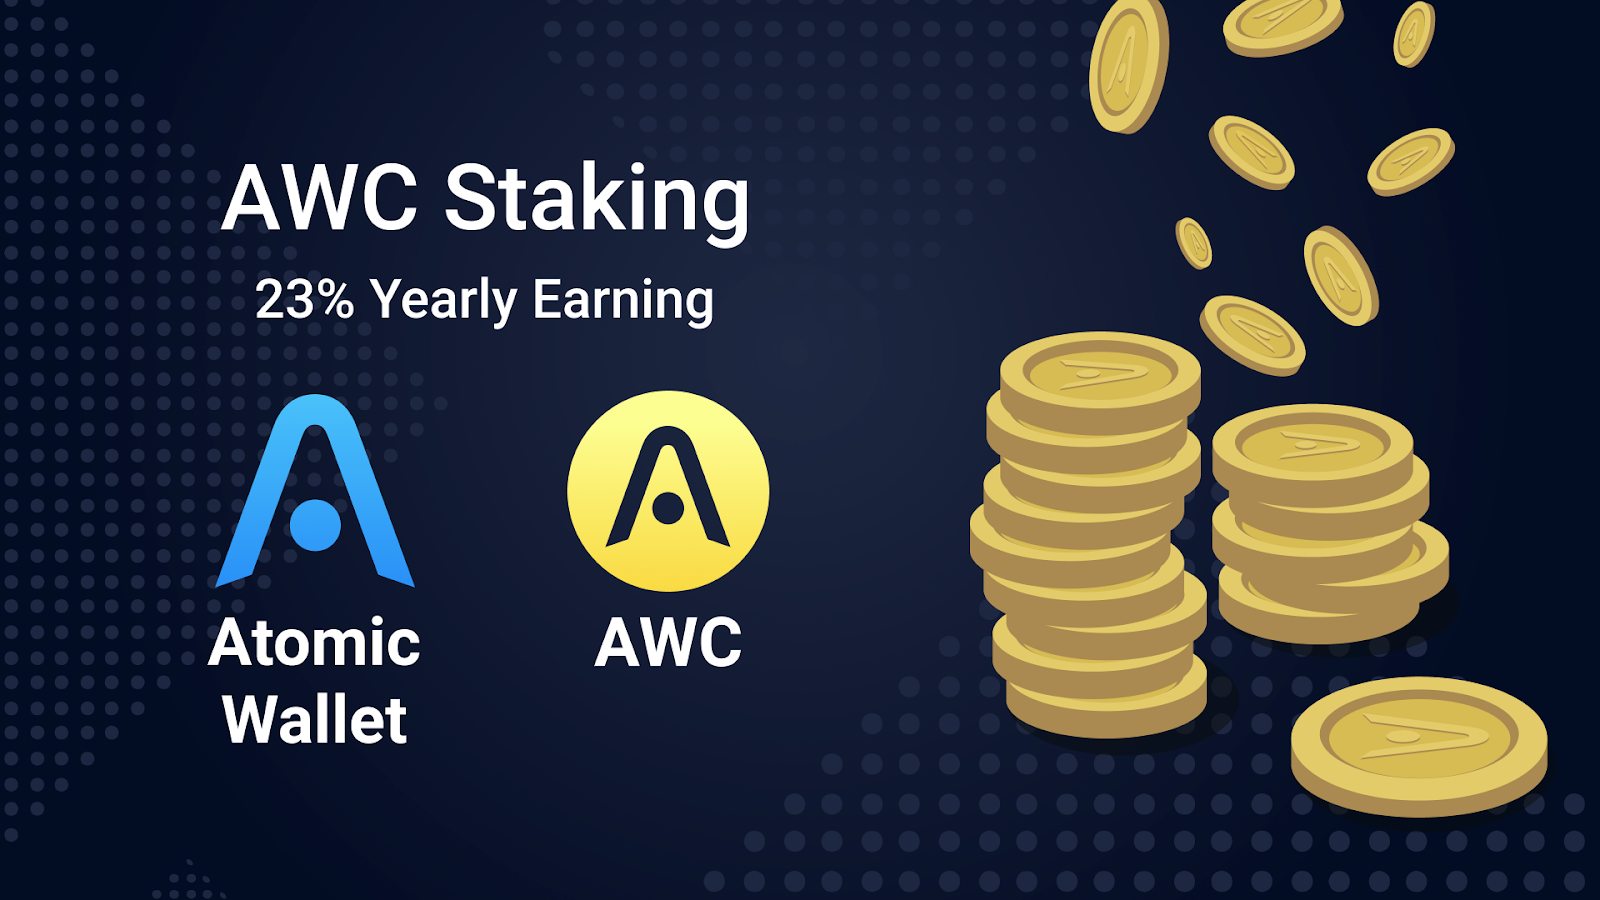 AWC staking